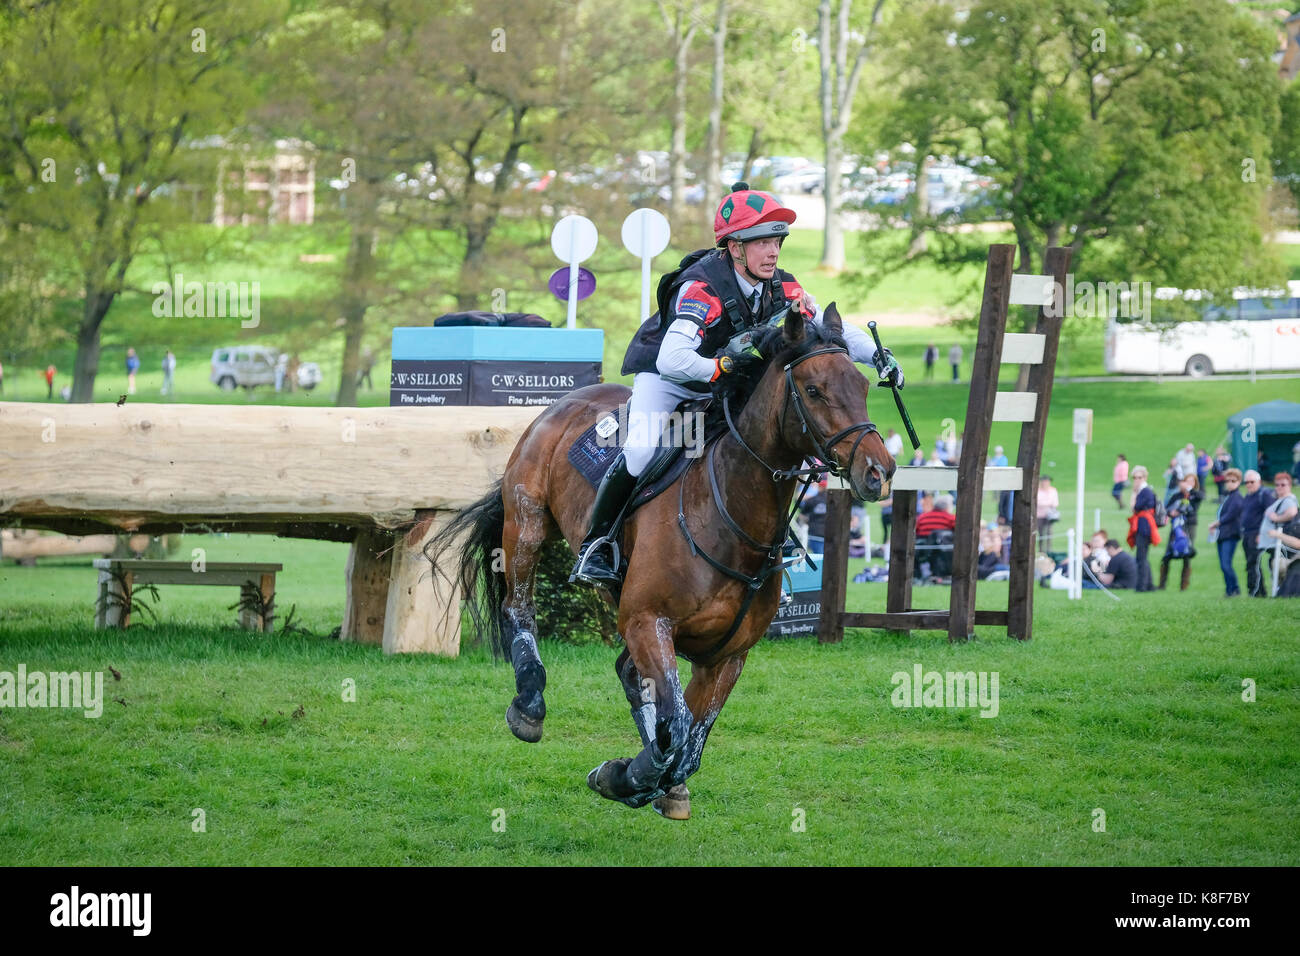 Rider and horse on the cross country course at Chatsworth International Horse Trials - Stock Image